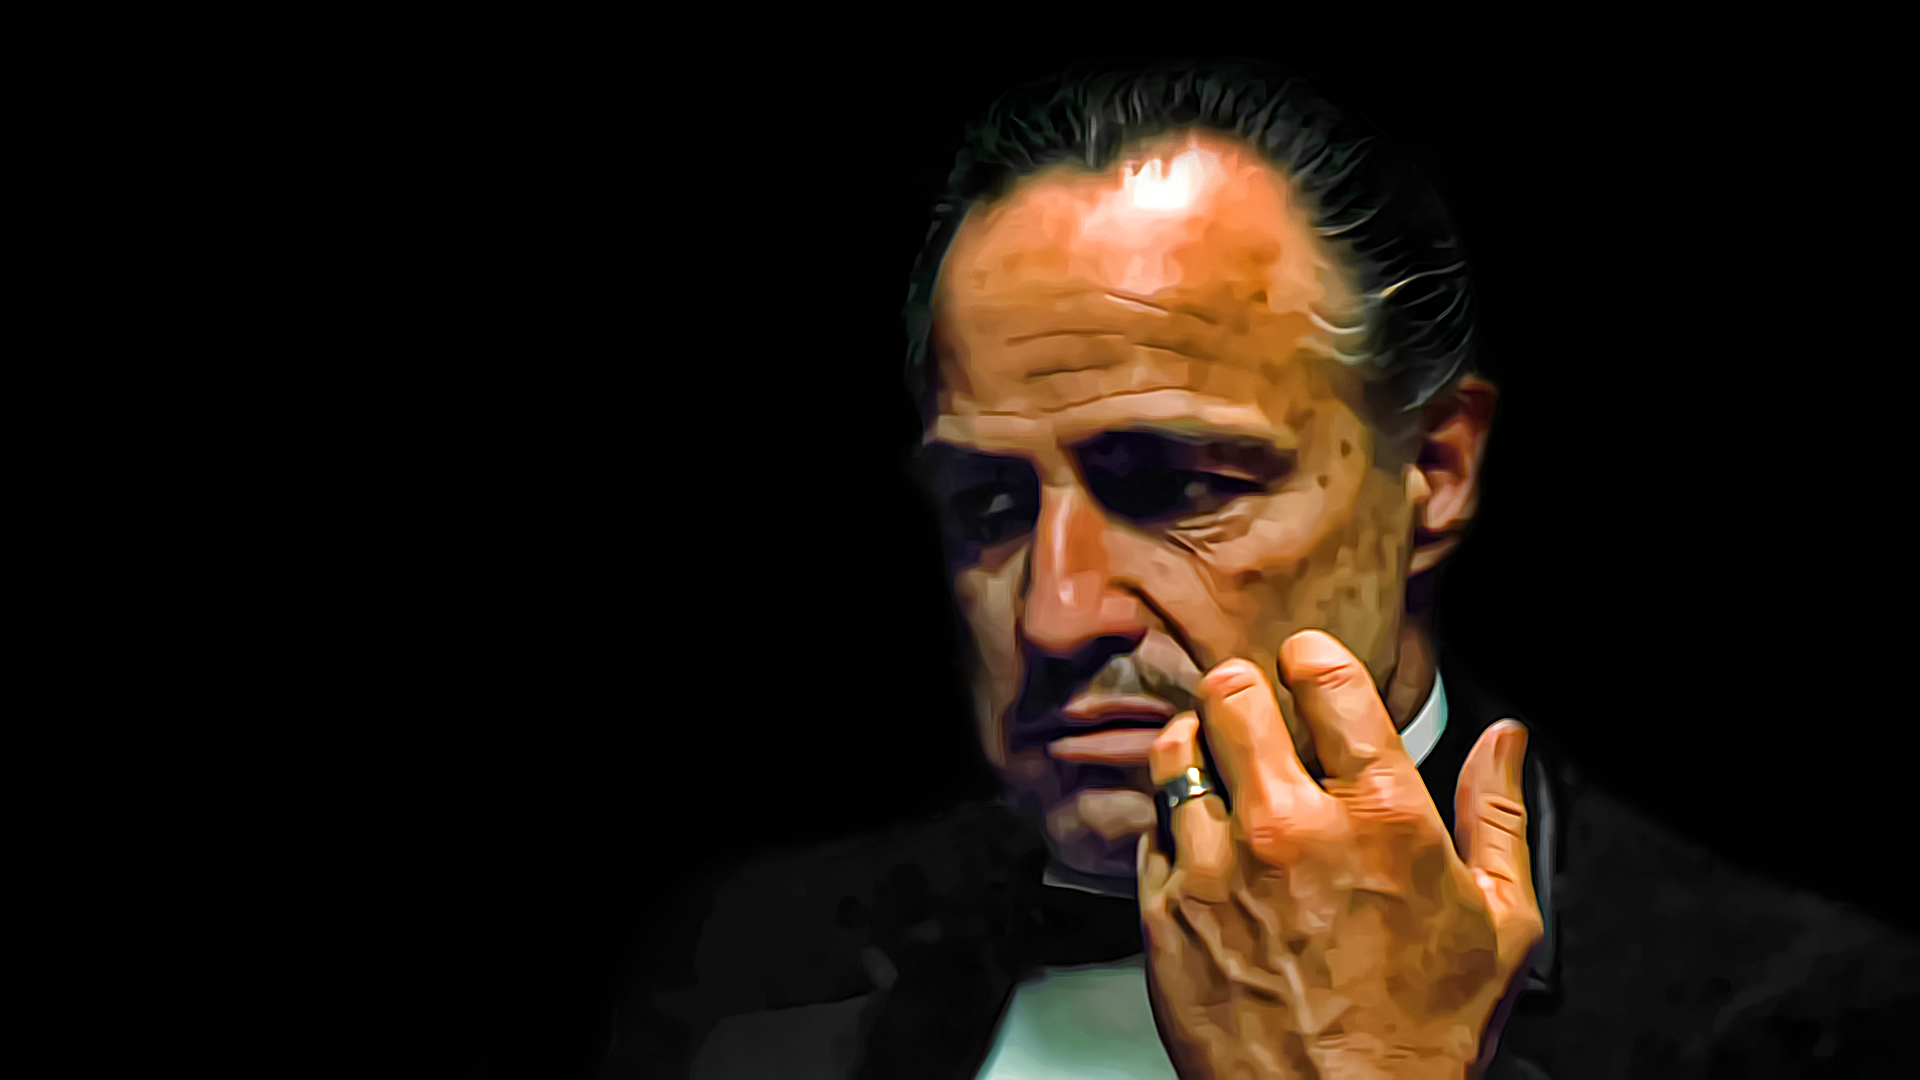 The Godfather Don Corleonepng 1920x1080